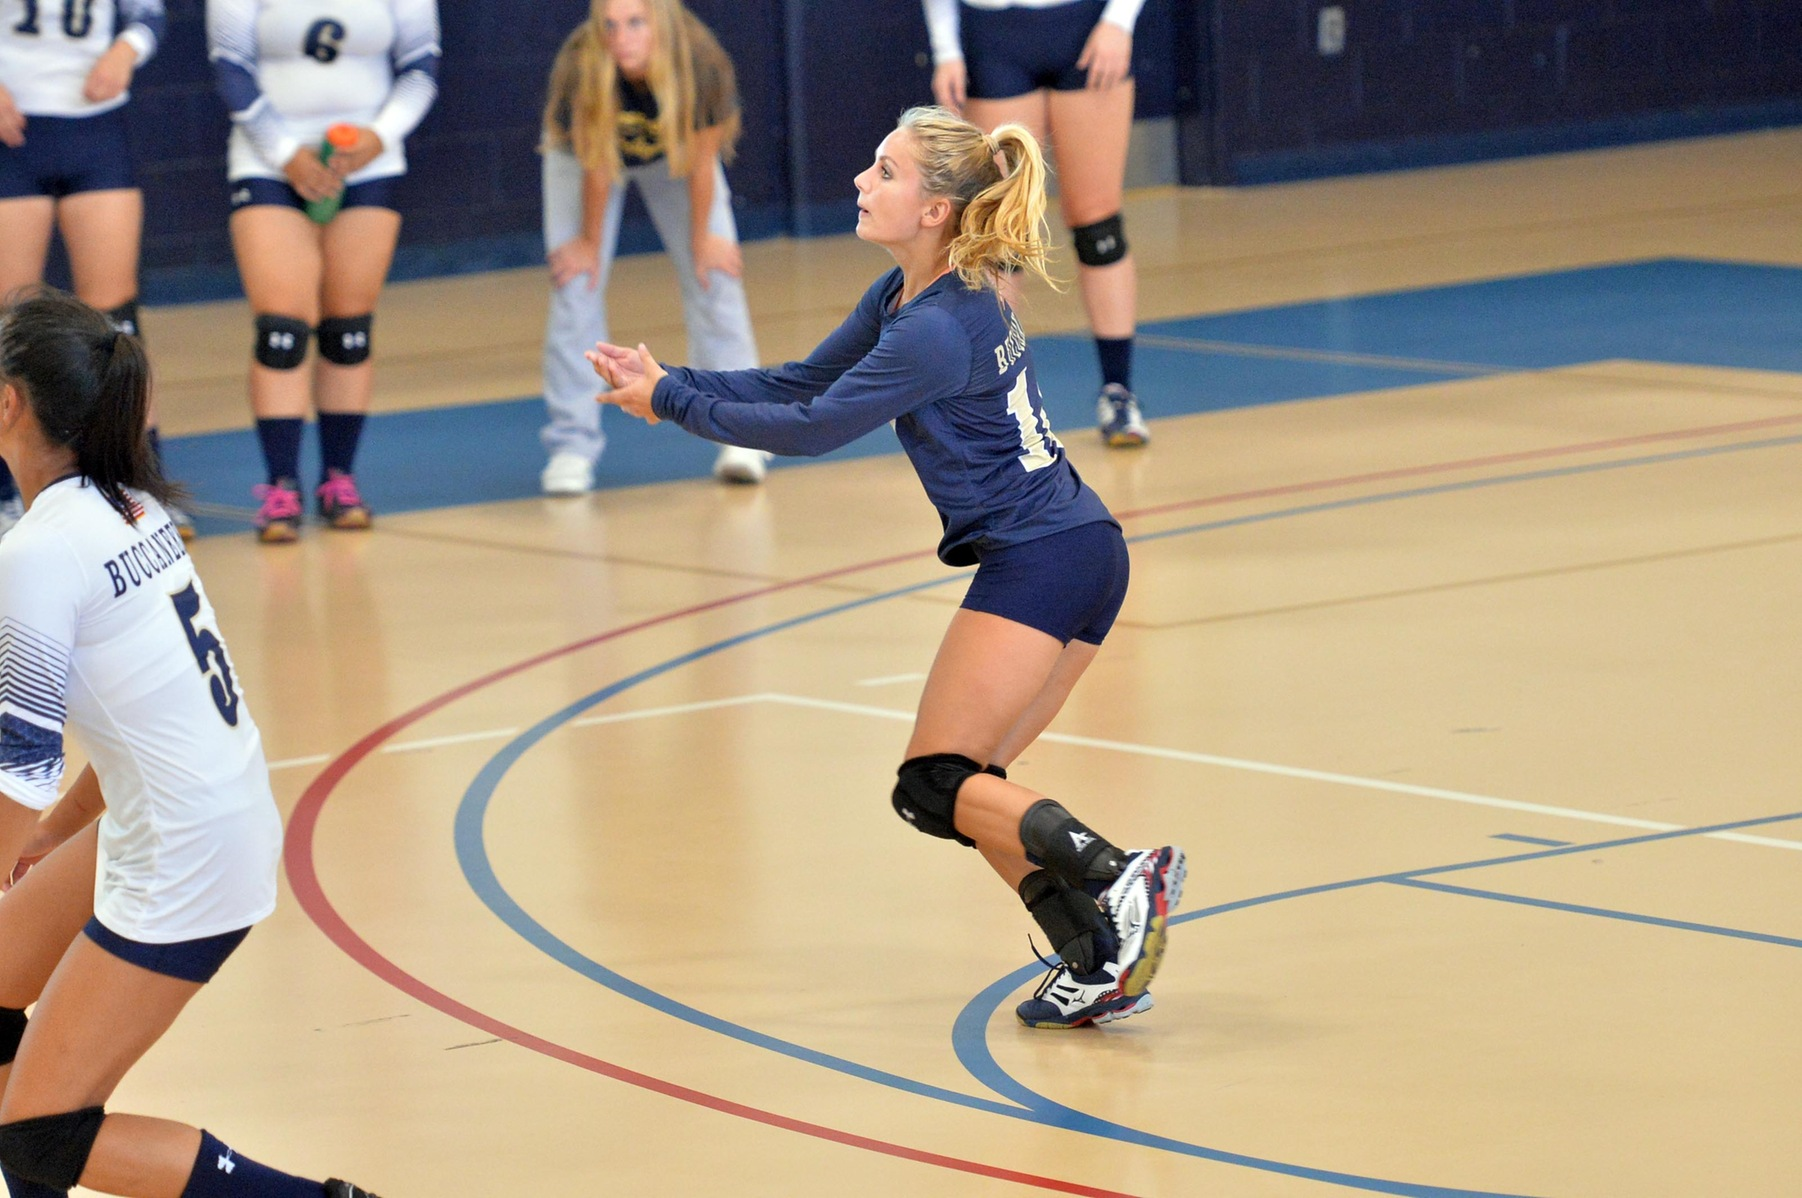 Volleyball Splits Season Opening Tri-Match with Anna Maria and Becker